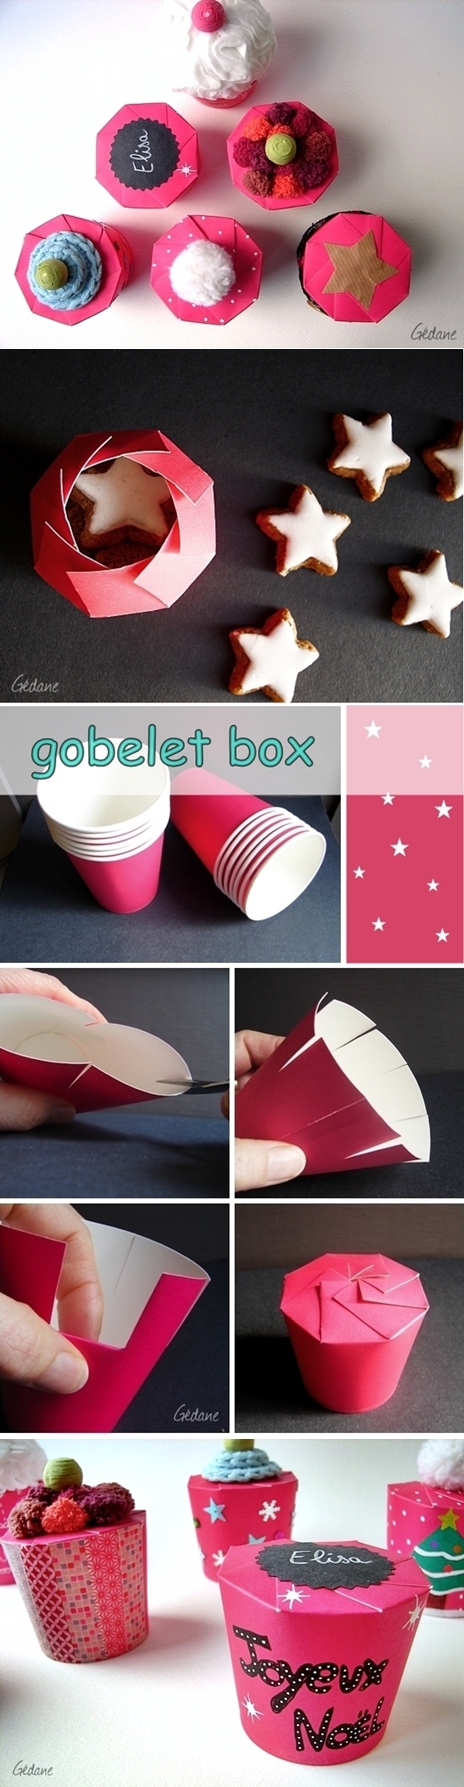 DIY paper cup gift box - how to fold a paper cup into gift box tutorial